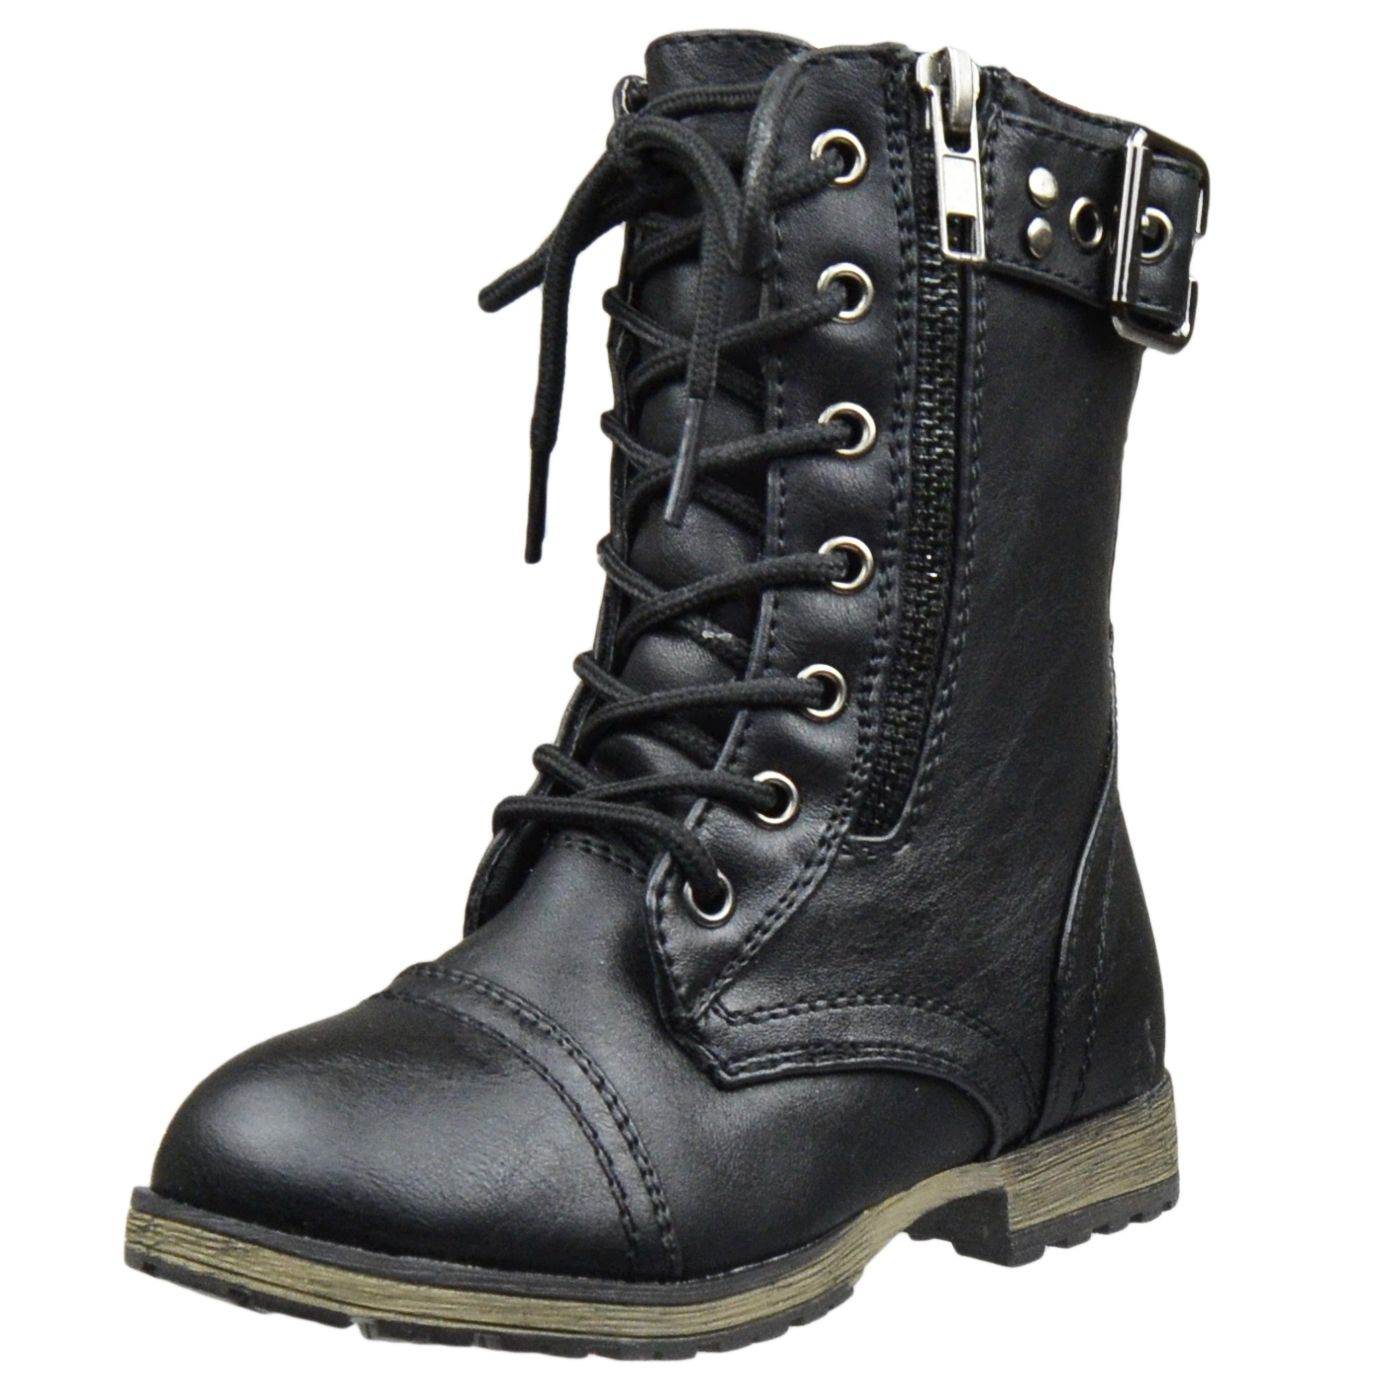 Kids Mid Calf Boots Fold Over Cuff Fur Lined Lace Up Combat Boots ...